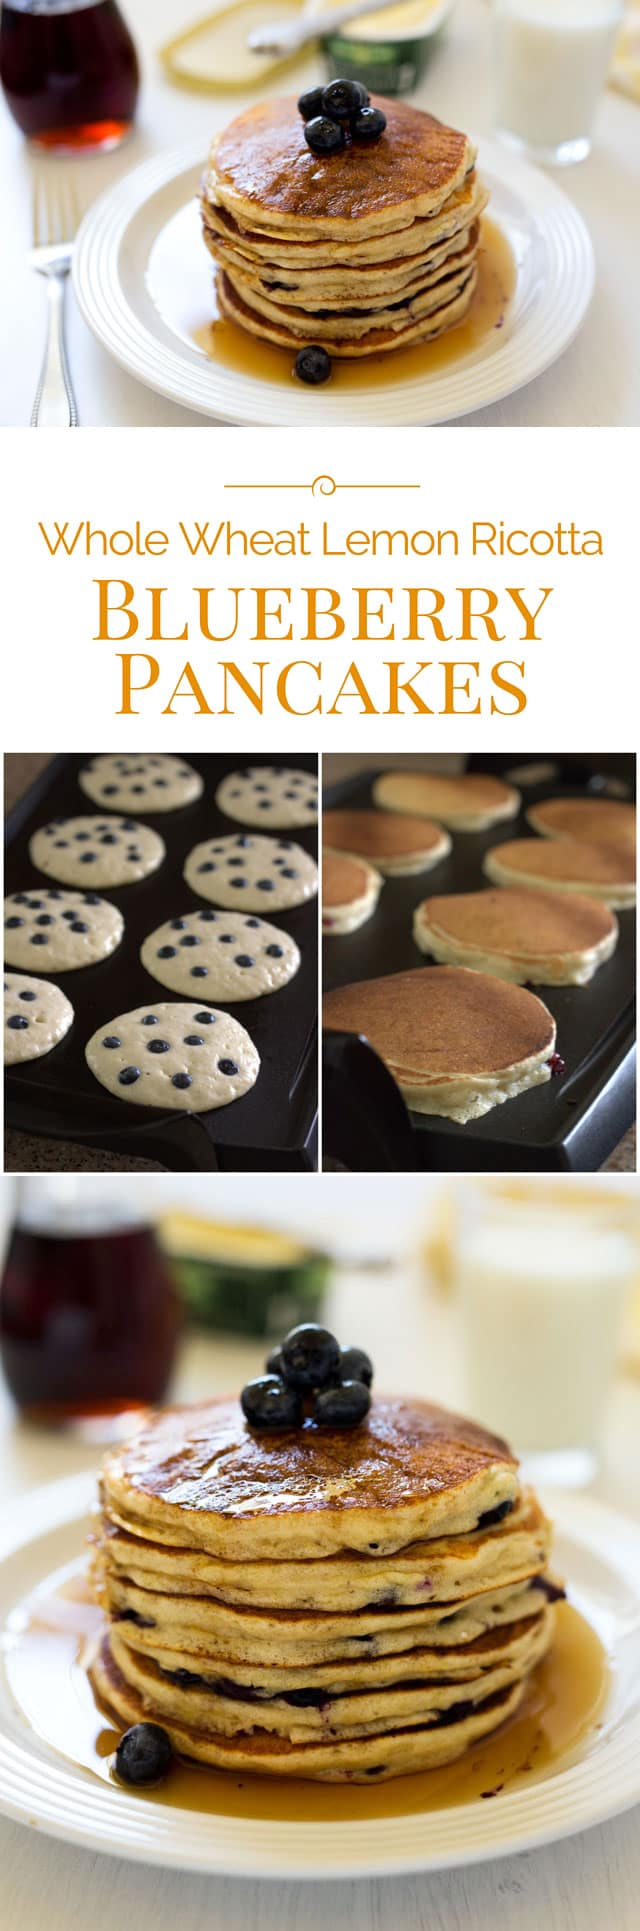 Whole-Wheat-Lemon-Ricotta-Blueberry-Pancakes-Collage-2-Barbara-Bake